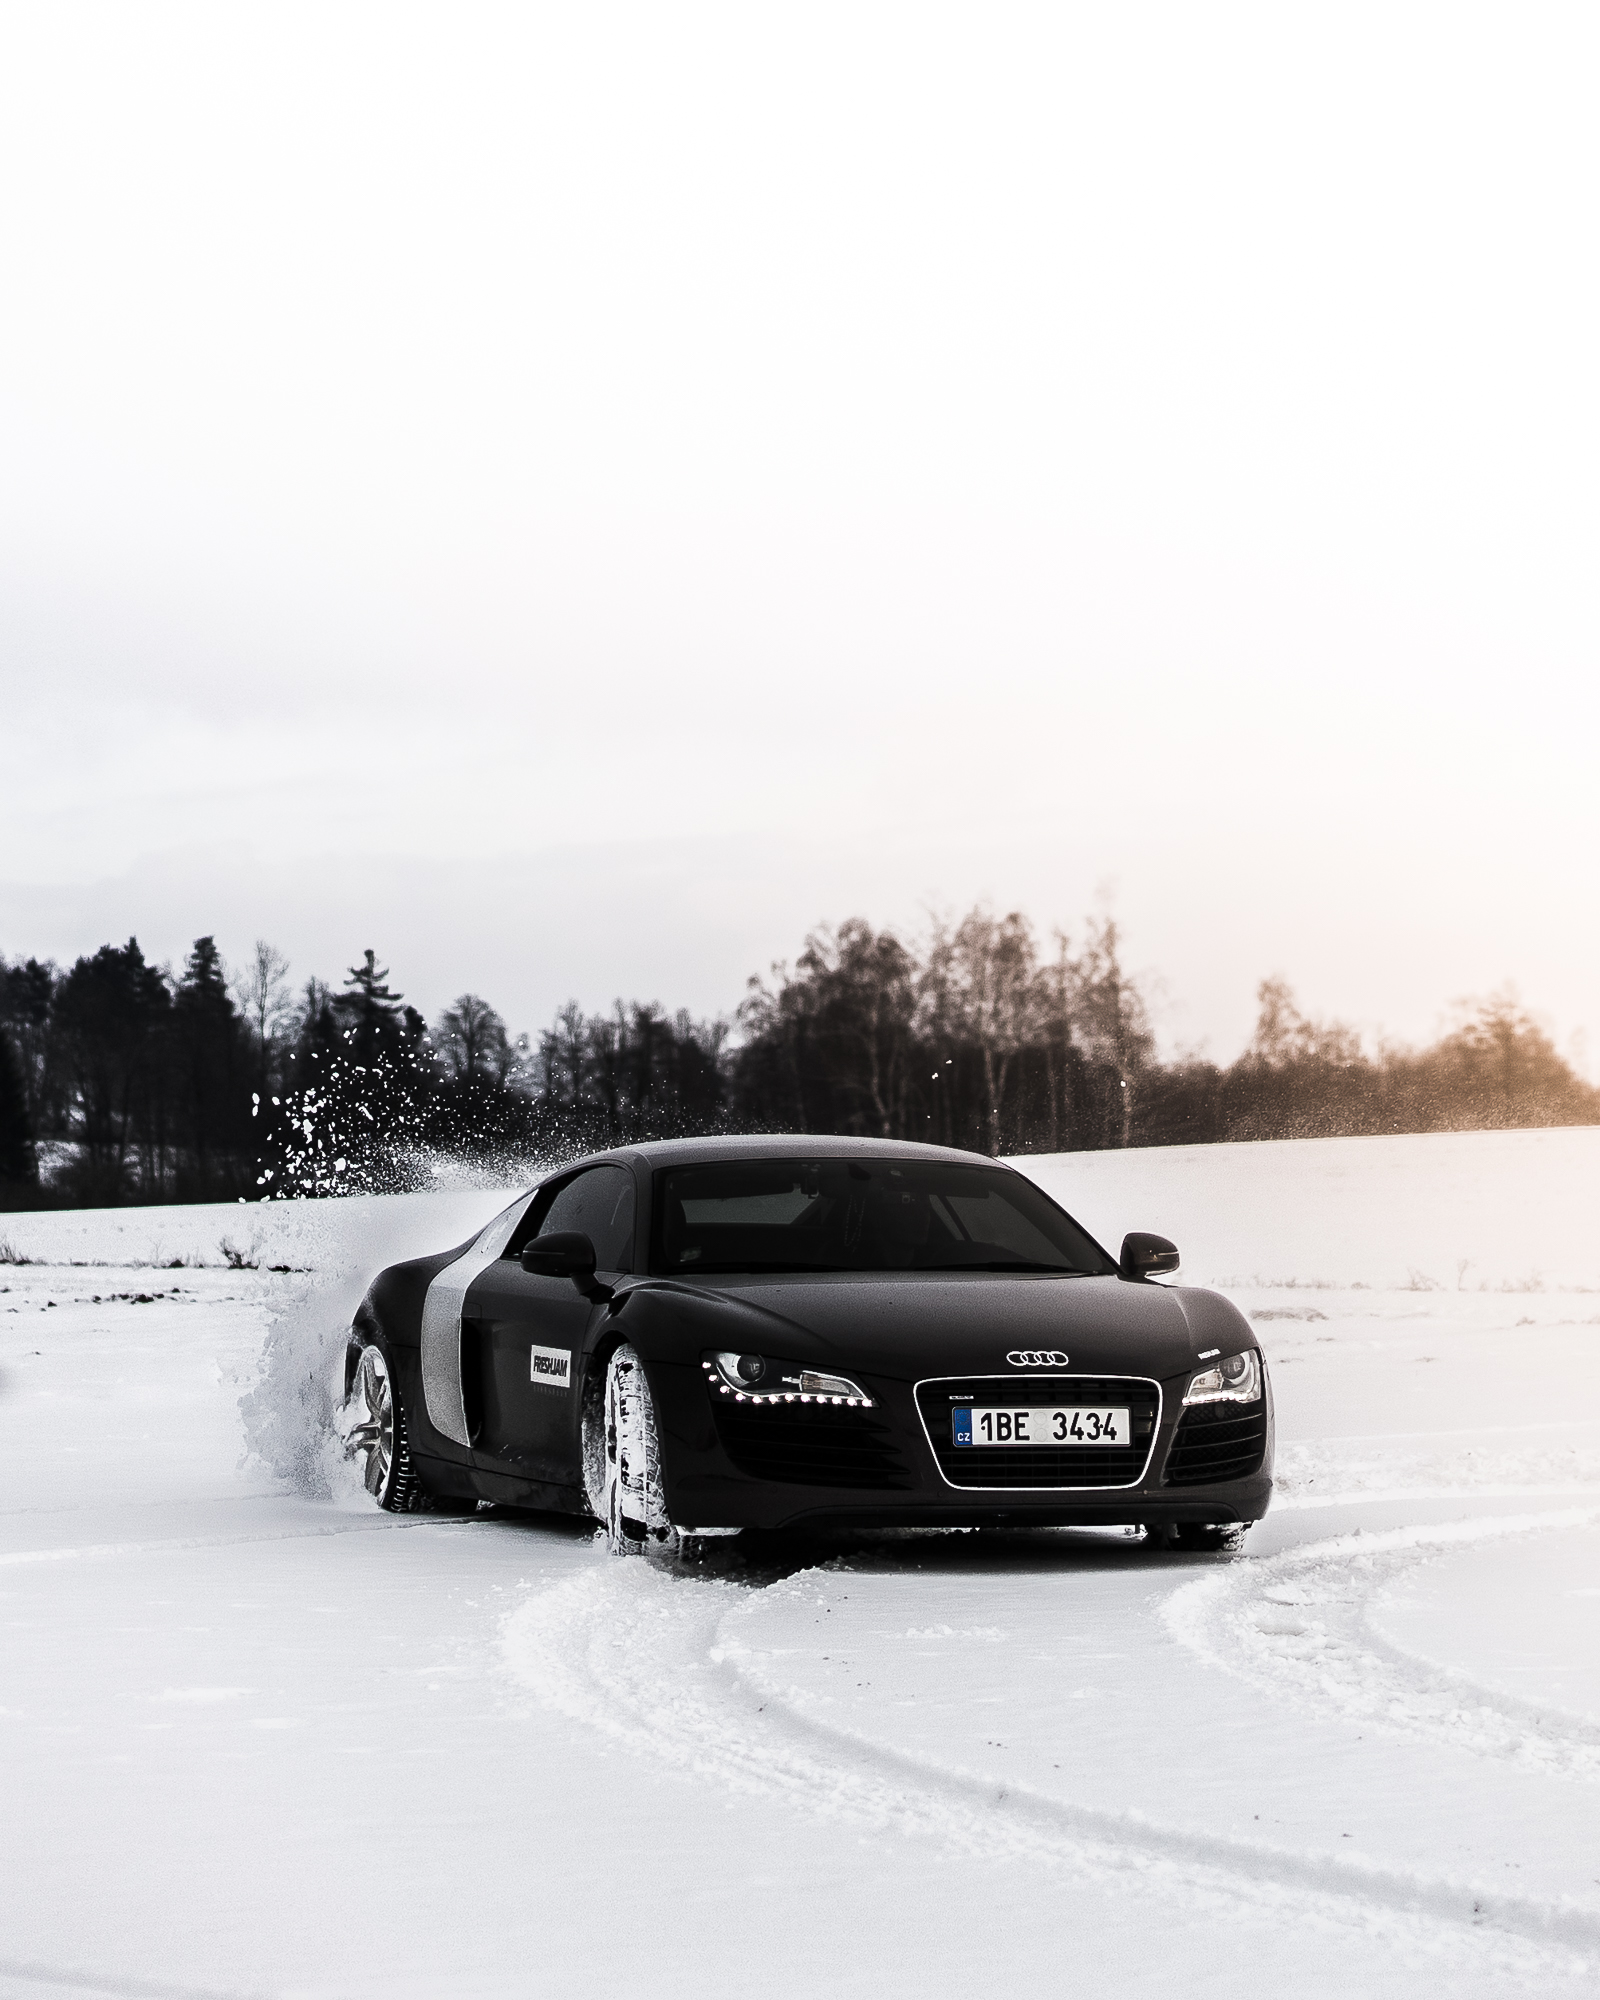 First Snow Drift Donuts with R8